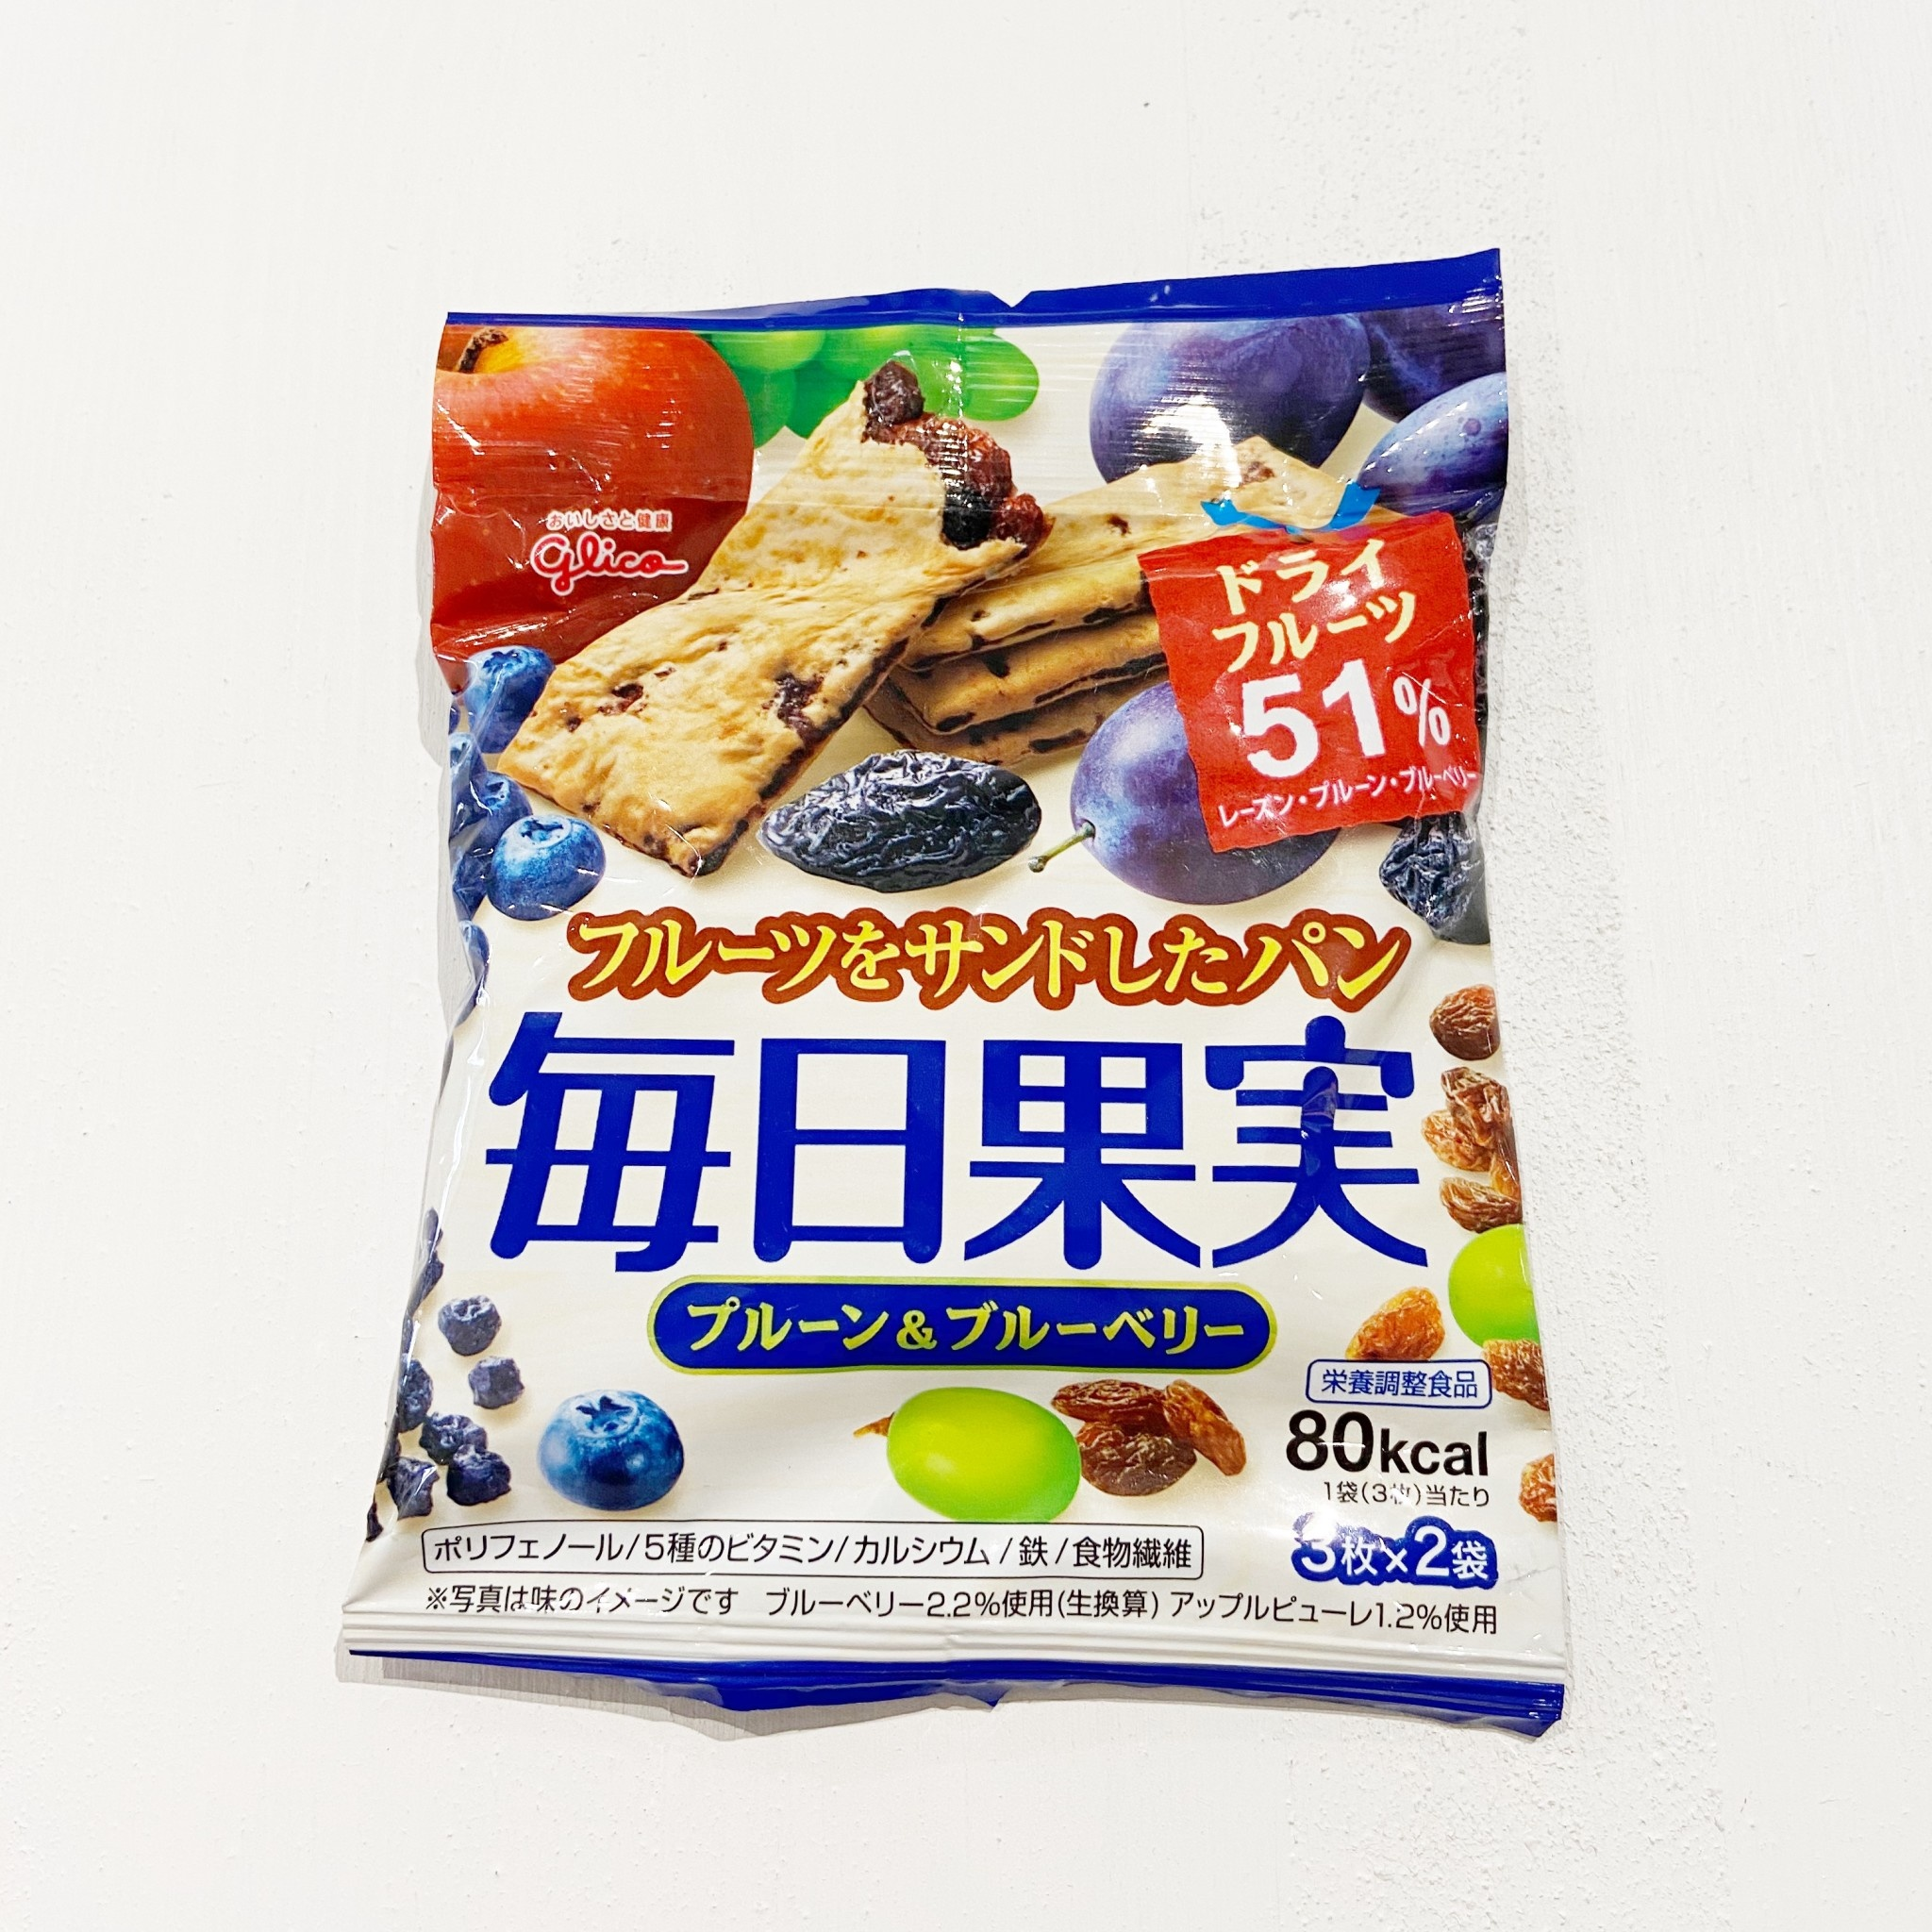 GLICO Mainichi Kajitsu Everyday Fruit